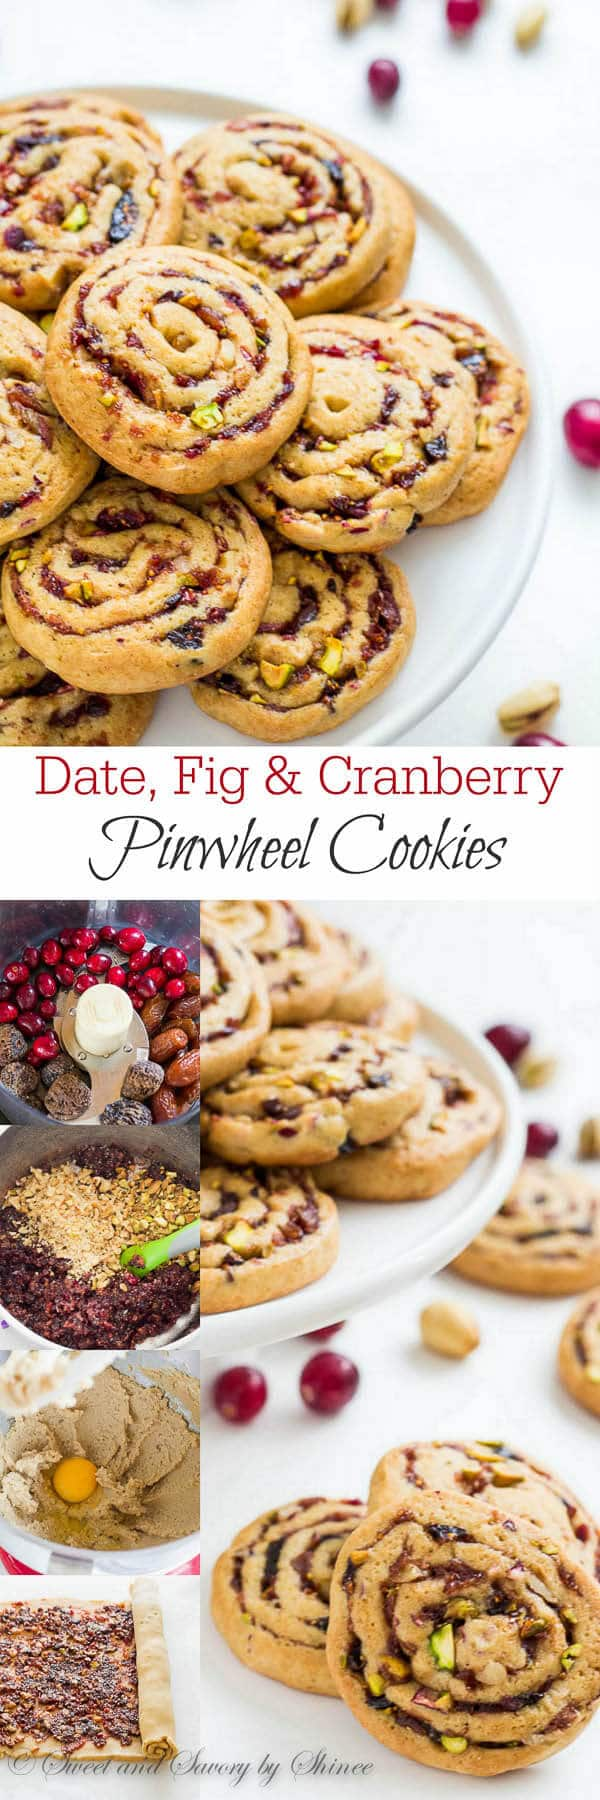 Learn how to make pinwheel cookies with my step-by-step photos. Soft and chewy cookies filled with sweet and fruity filling and crunchy nuts.